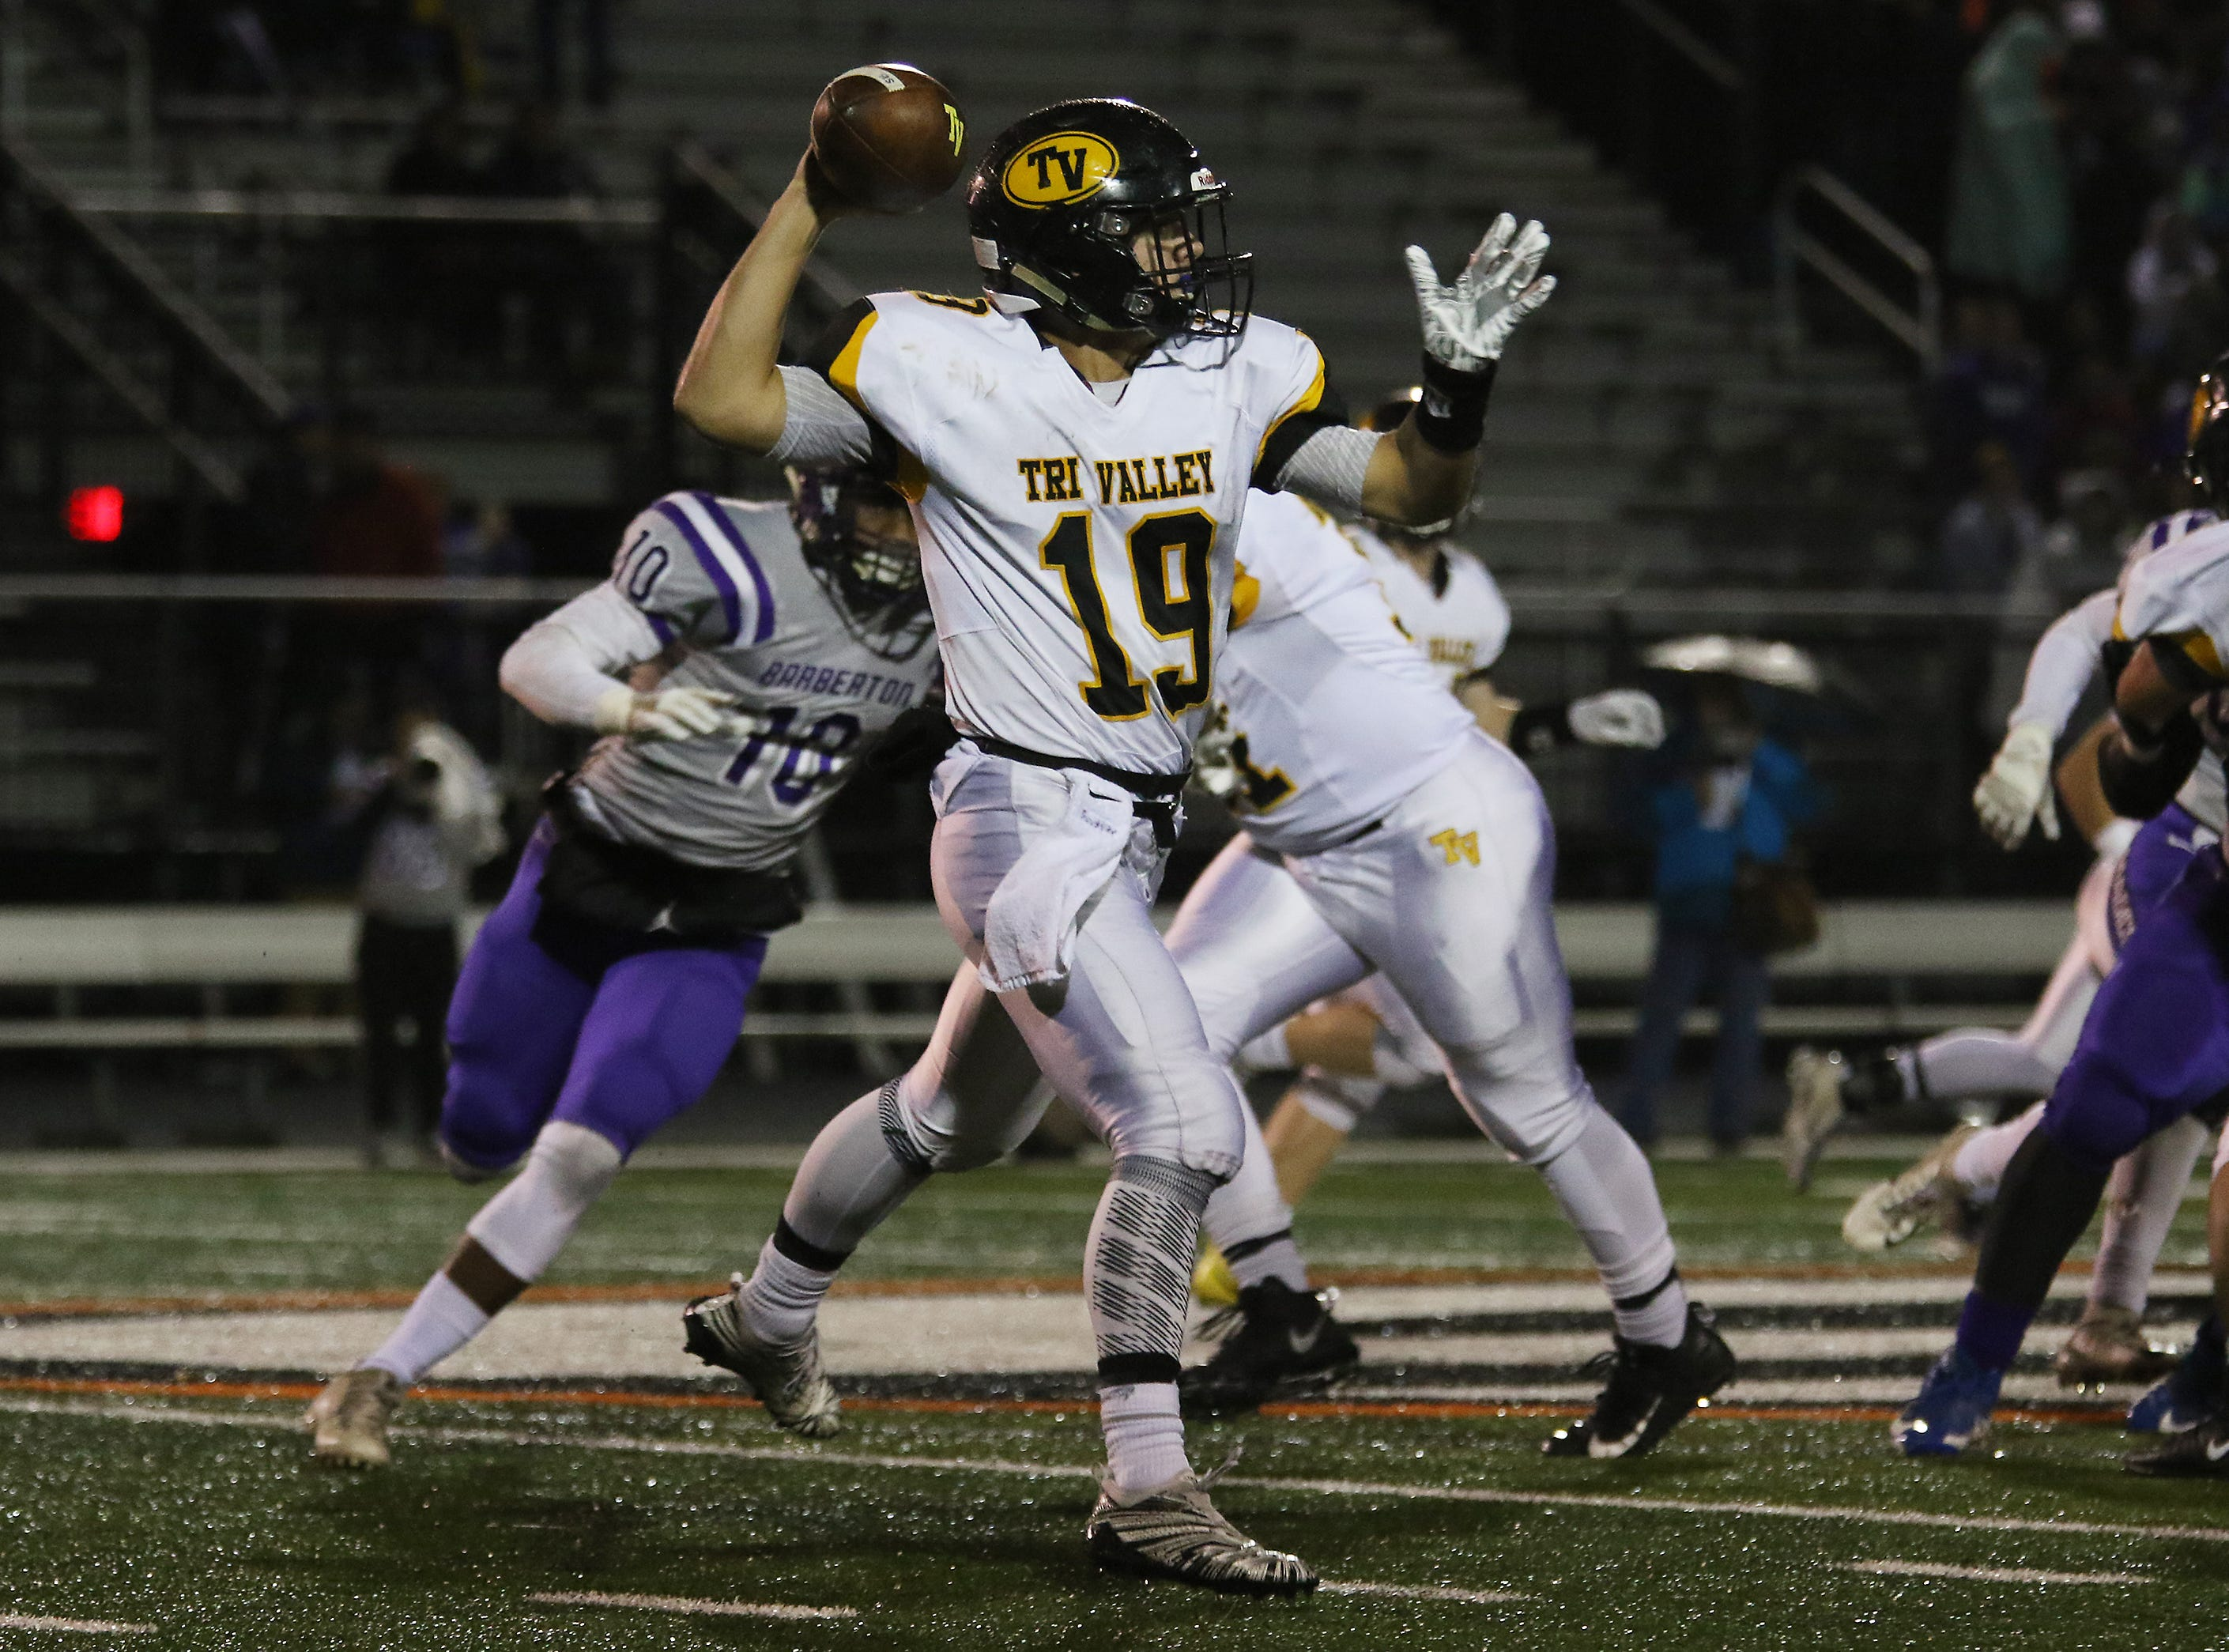 Tri-Valley's Aiden Fritter readies a throw against Barberton.